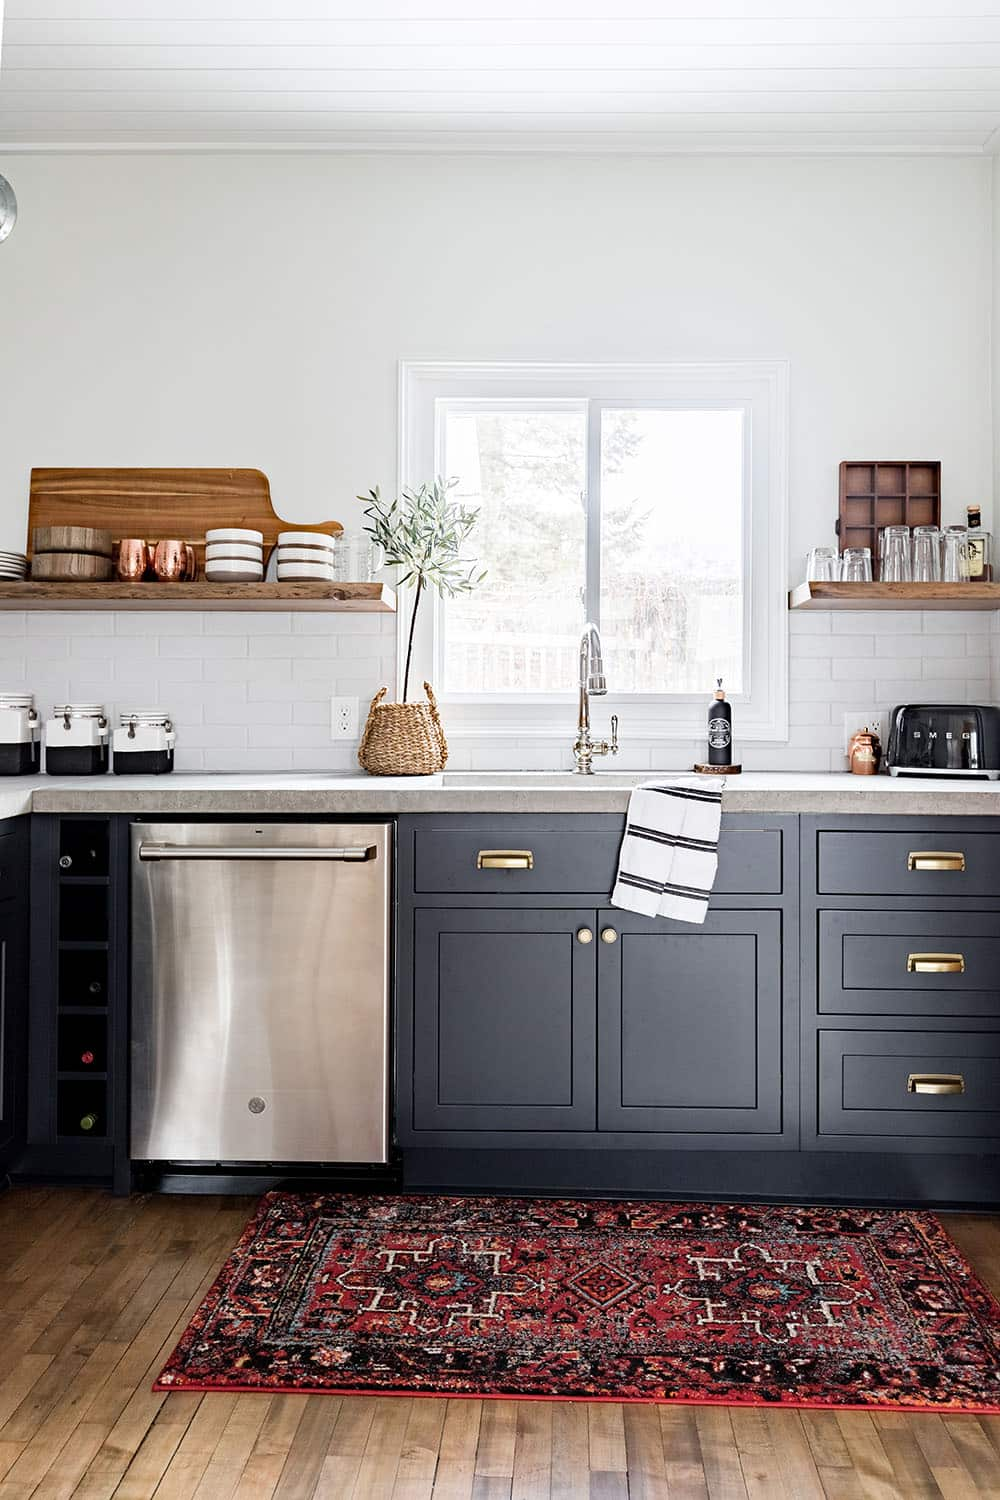 A kitchen sink area with floating wood shelves on either side.